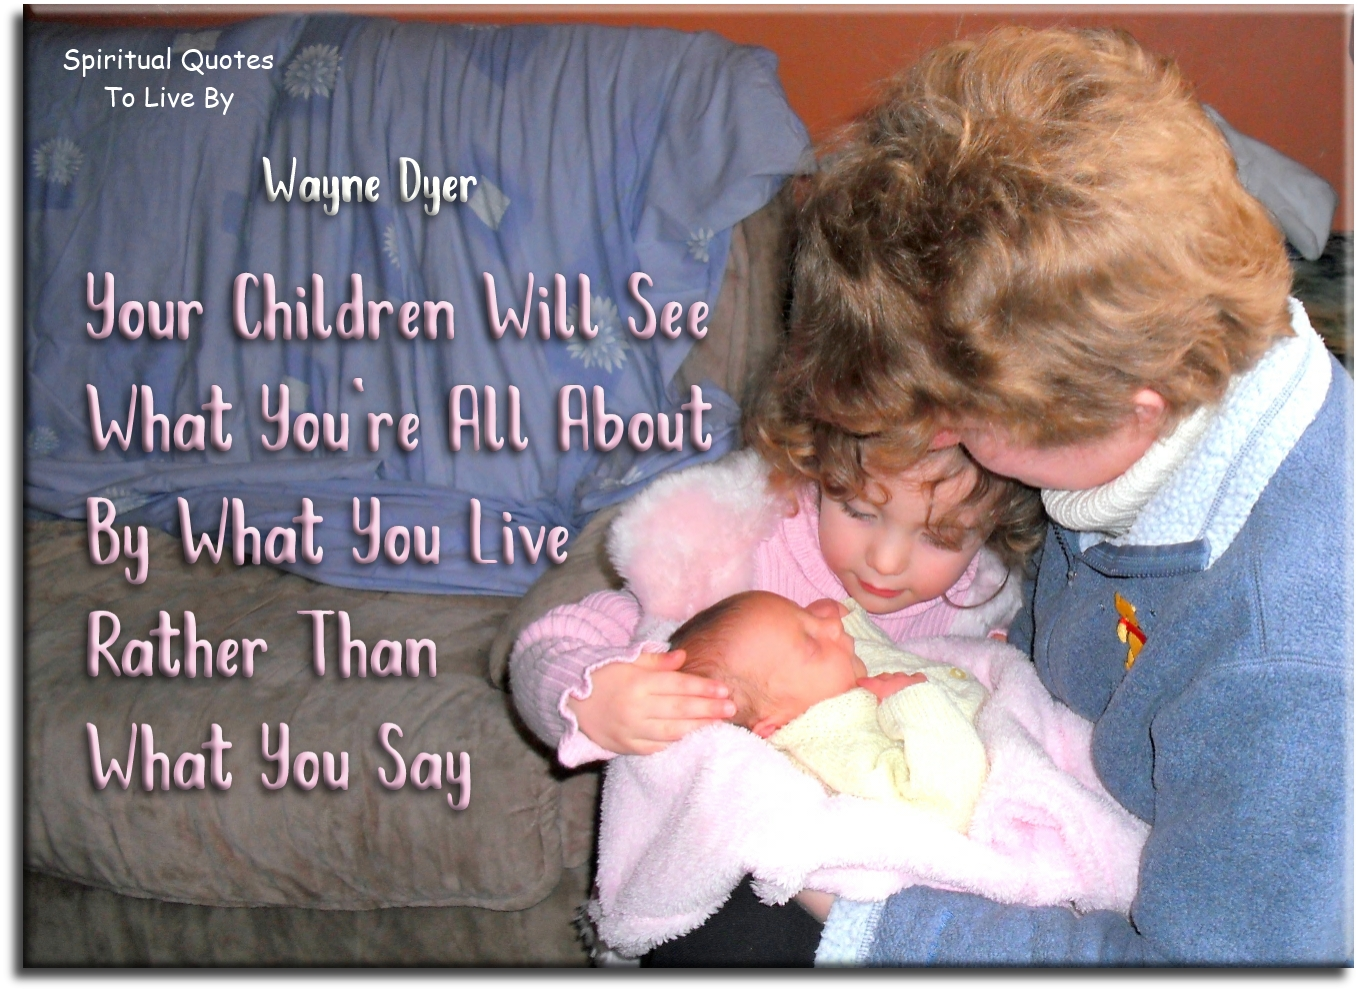 Wayne Dyer quote: Your children will see what you're all about by what you live, rather than what you say. - Spiritual Quotes To Live By